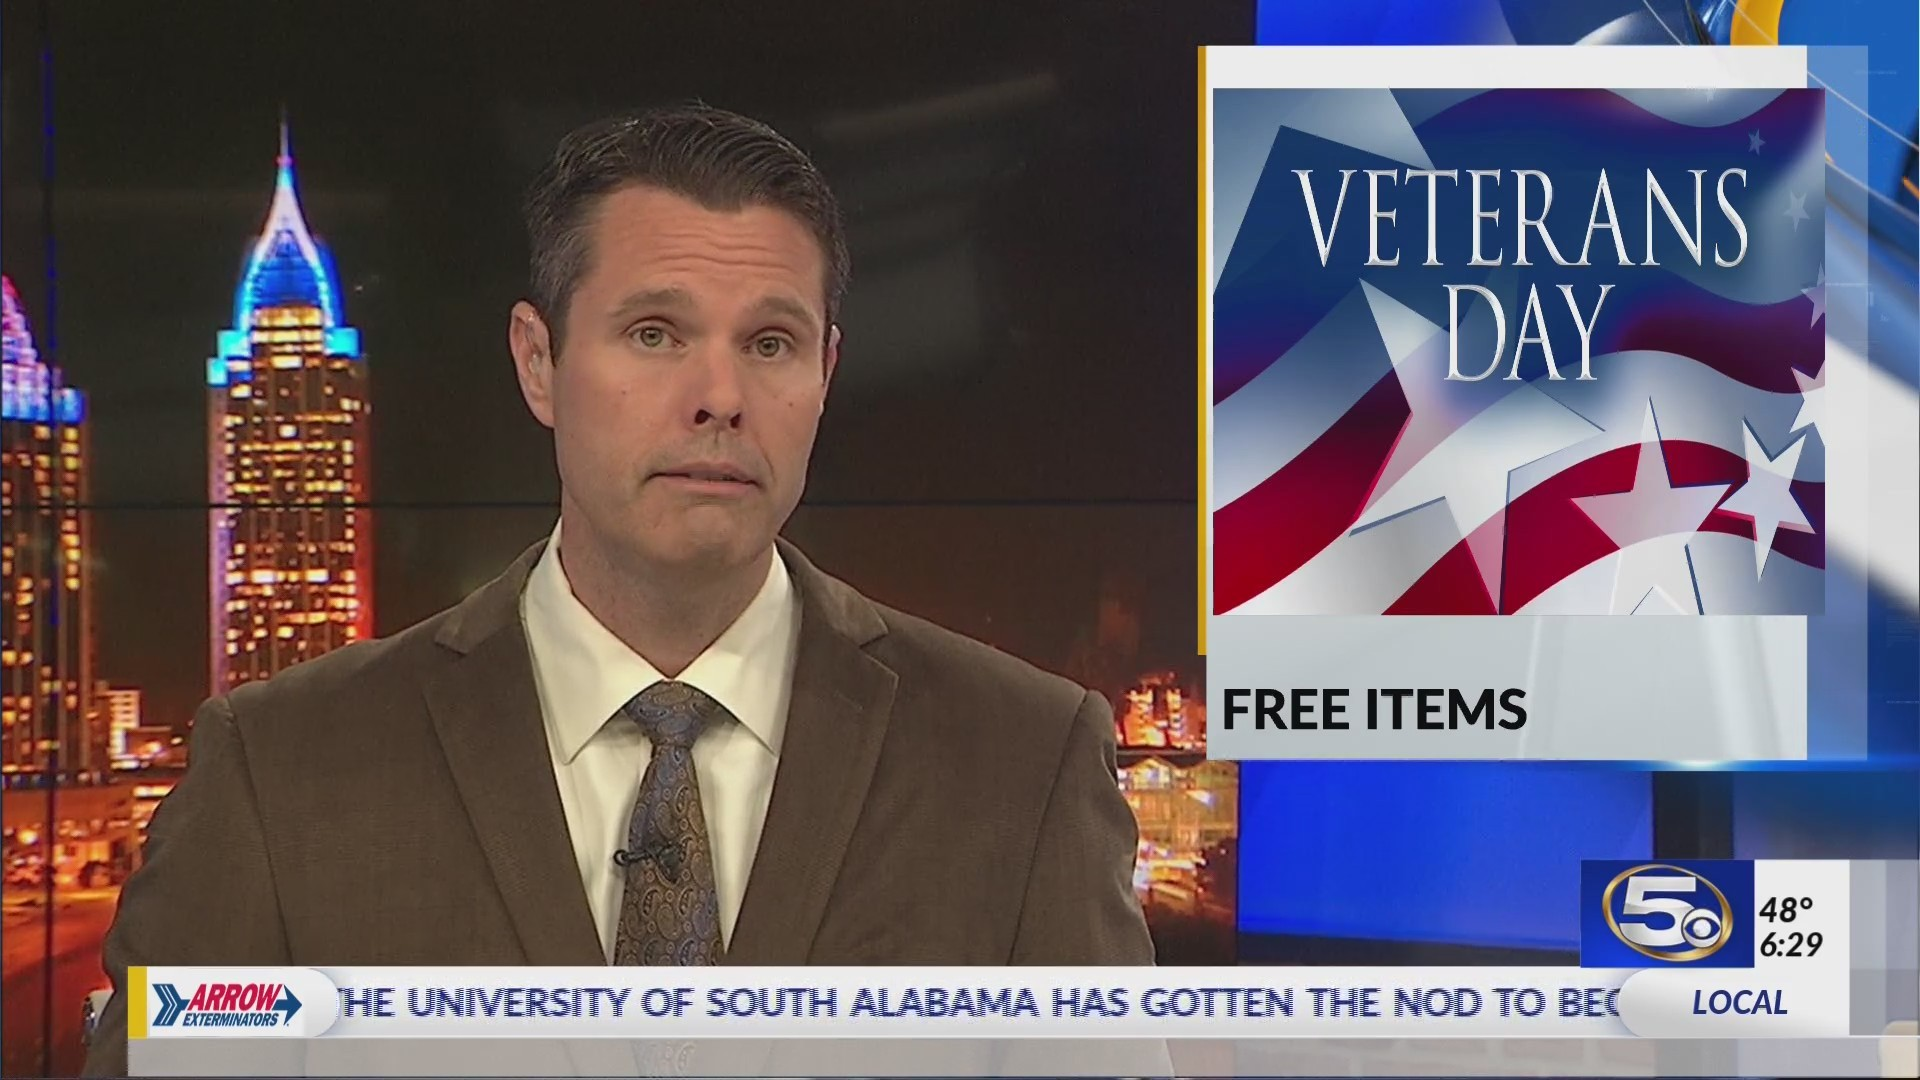 Veterans, active military to get free items